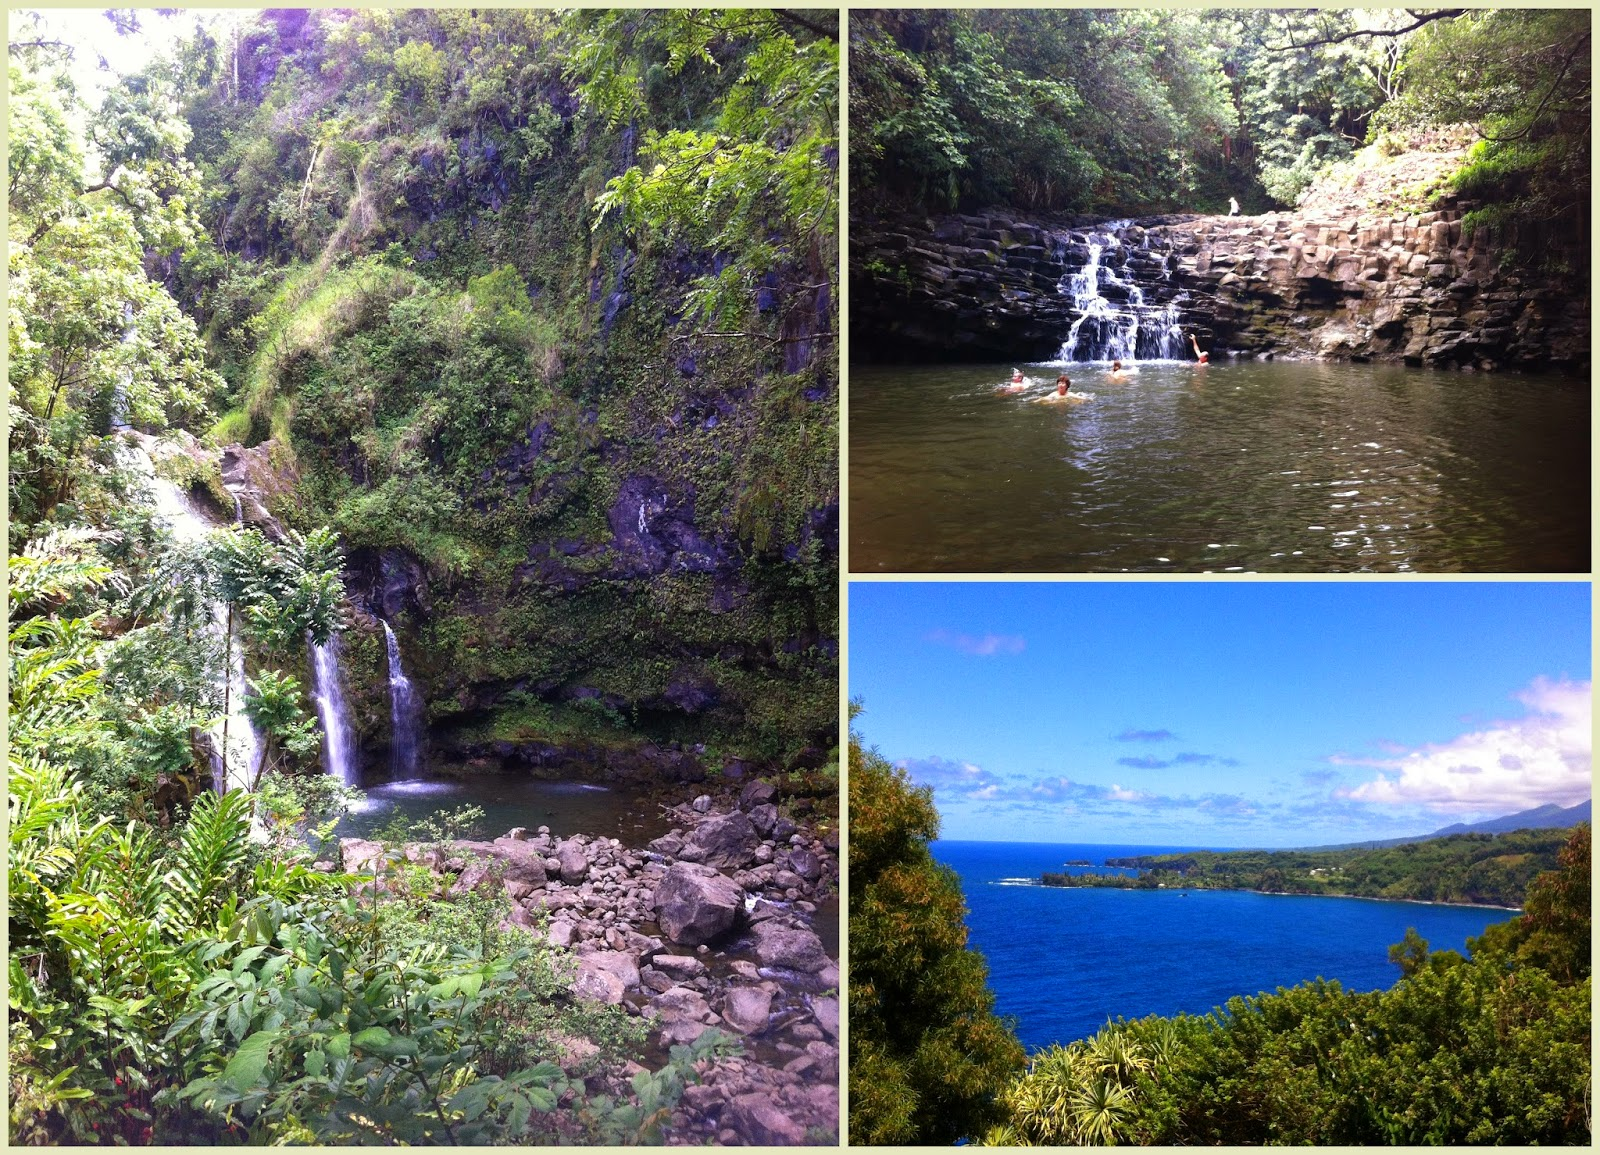 Pools and falls in Hana road Maui